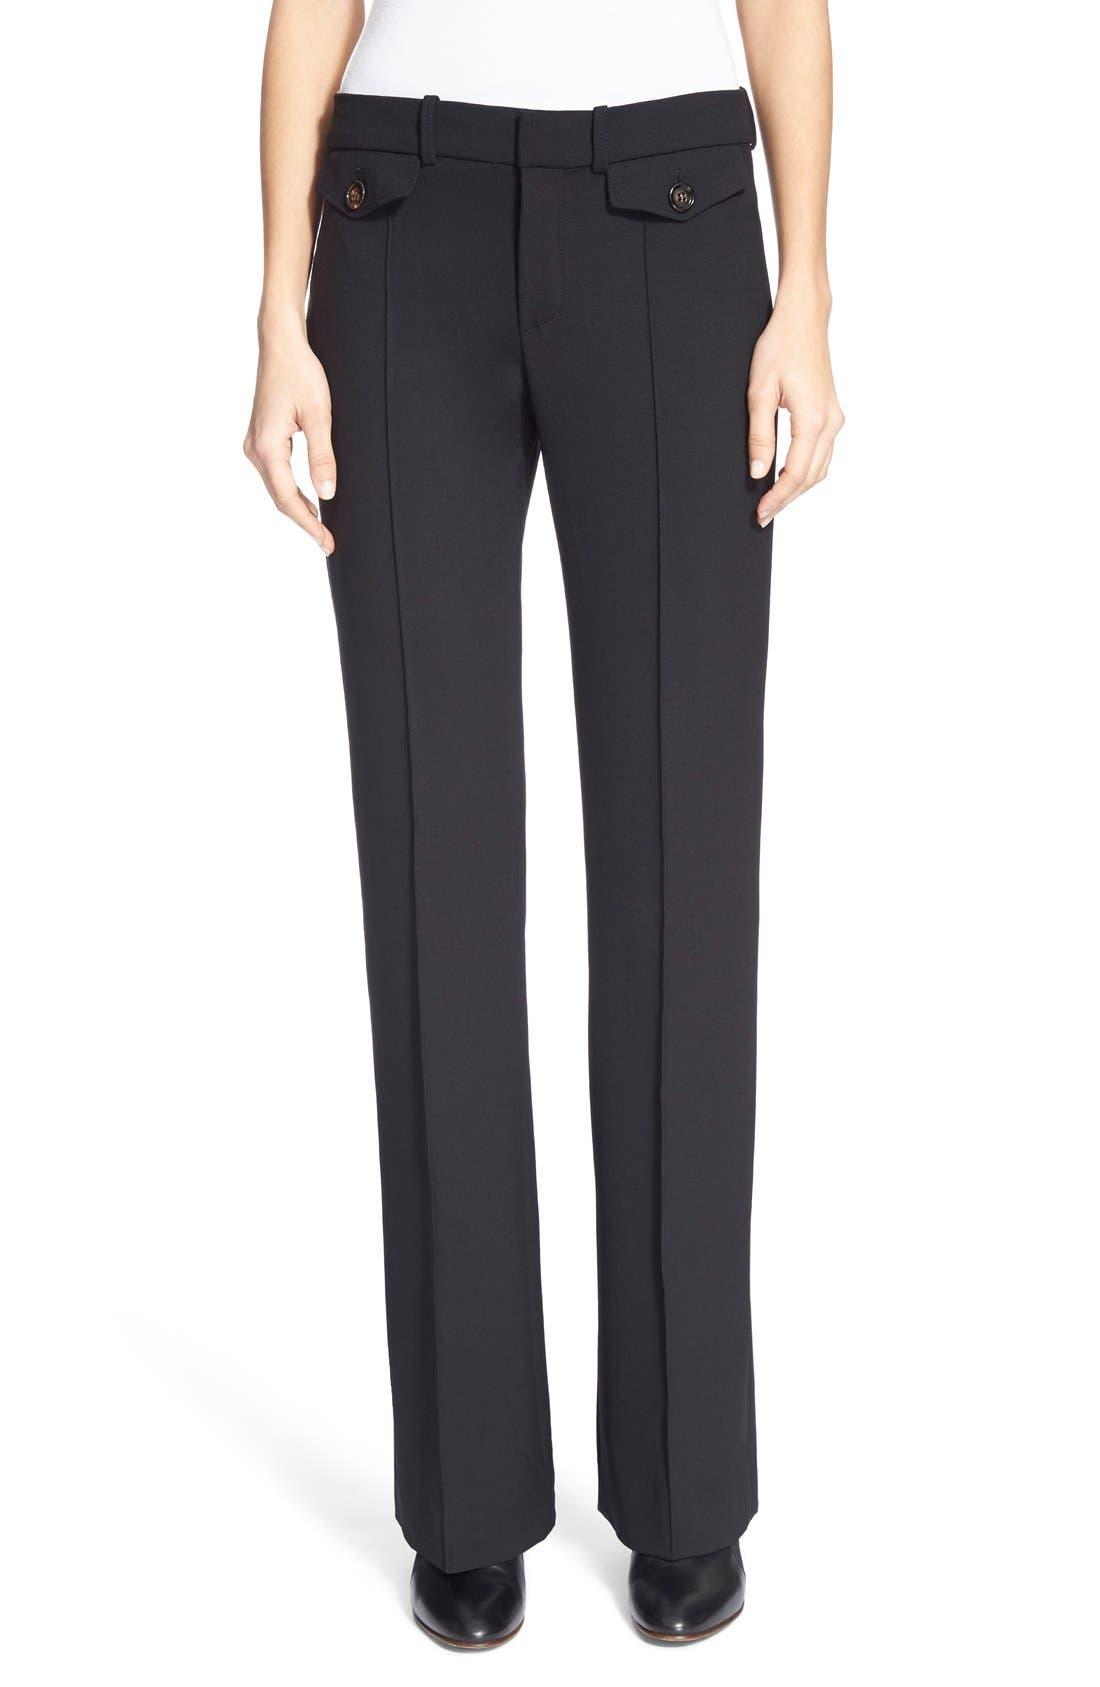 CHLOÉ Stretch Wool Bootcut Pants